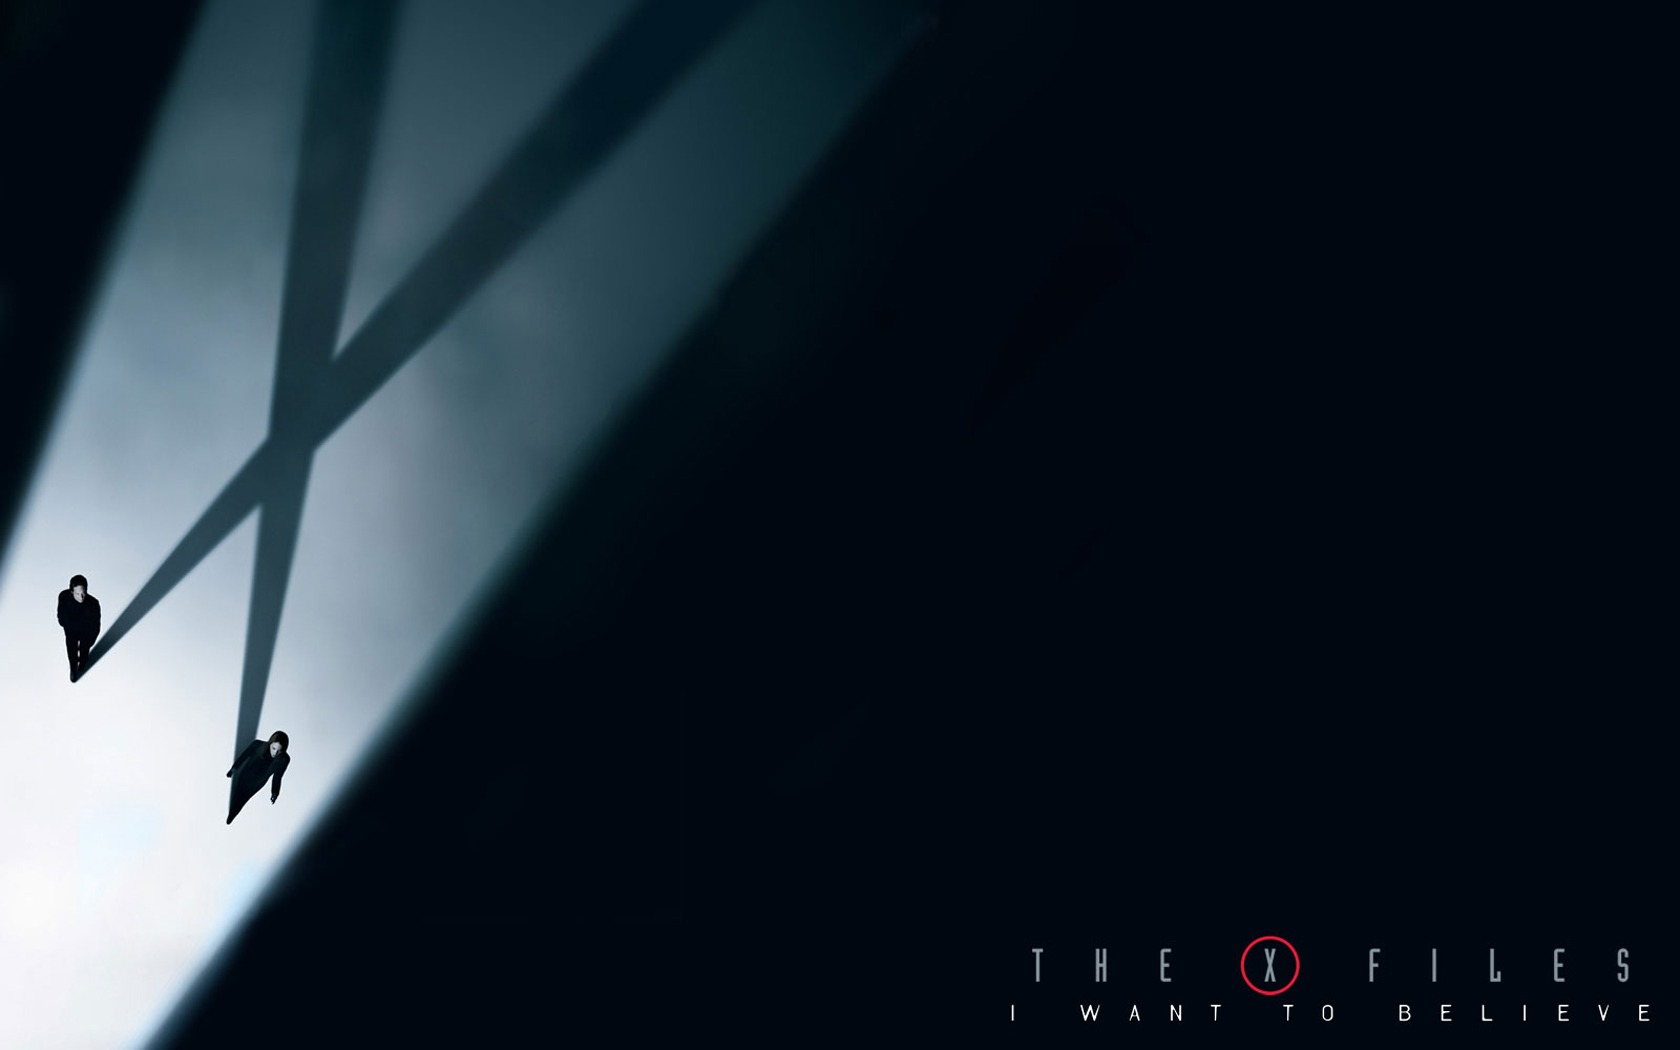 X Men Animated Series Wallpaper The X Files Movie Wallpaper The X Files Movies Wallpapers